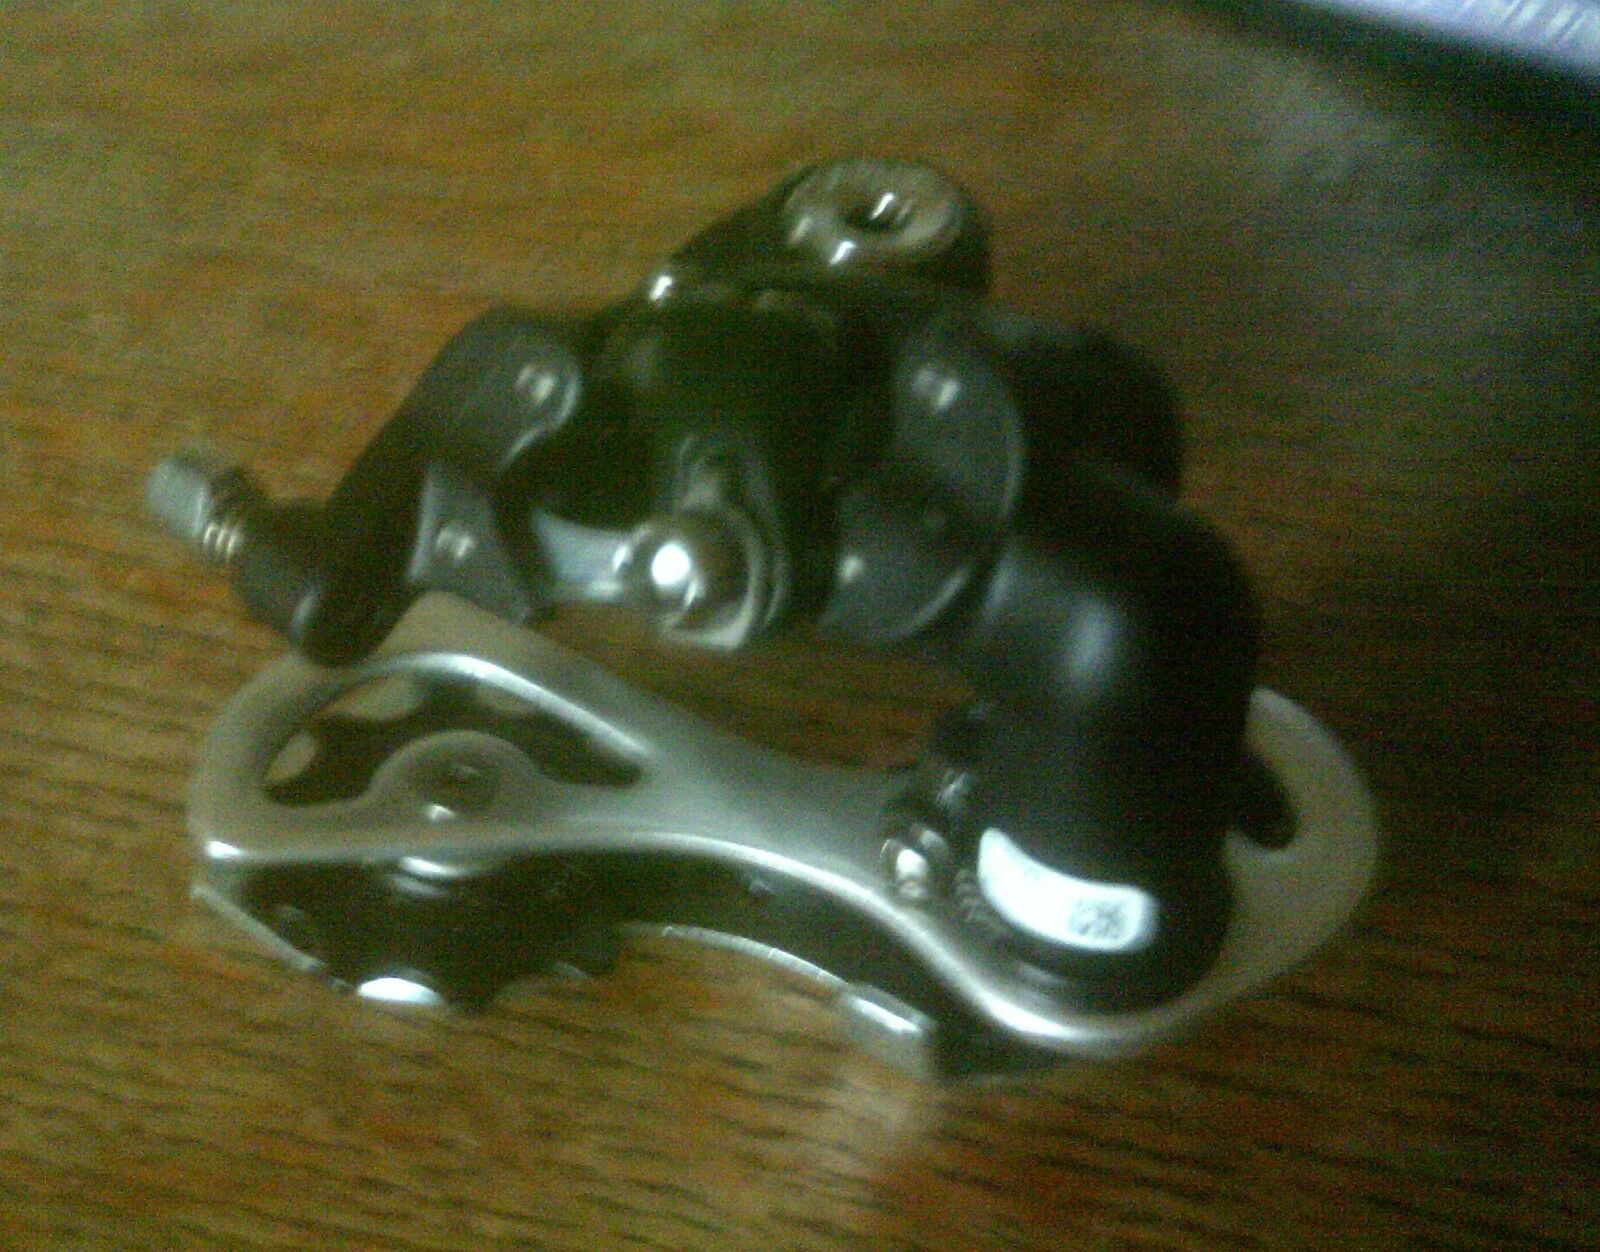 NOS CAMPAGNOLO XENON 9 SPEED REAR GEARS, SHORT CAGE